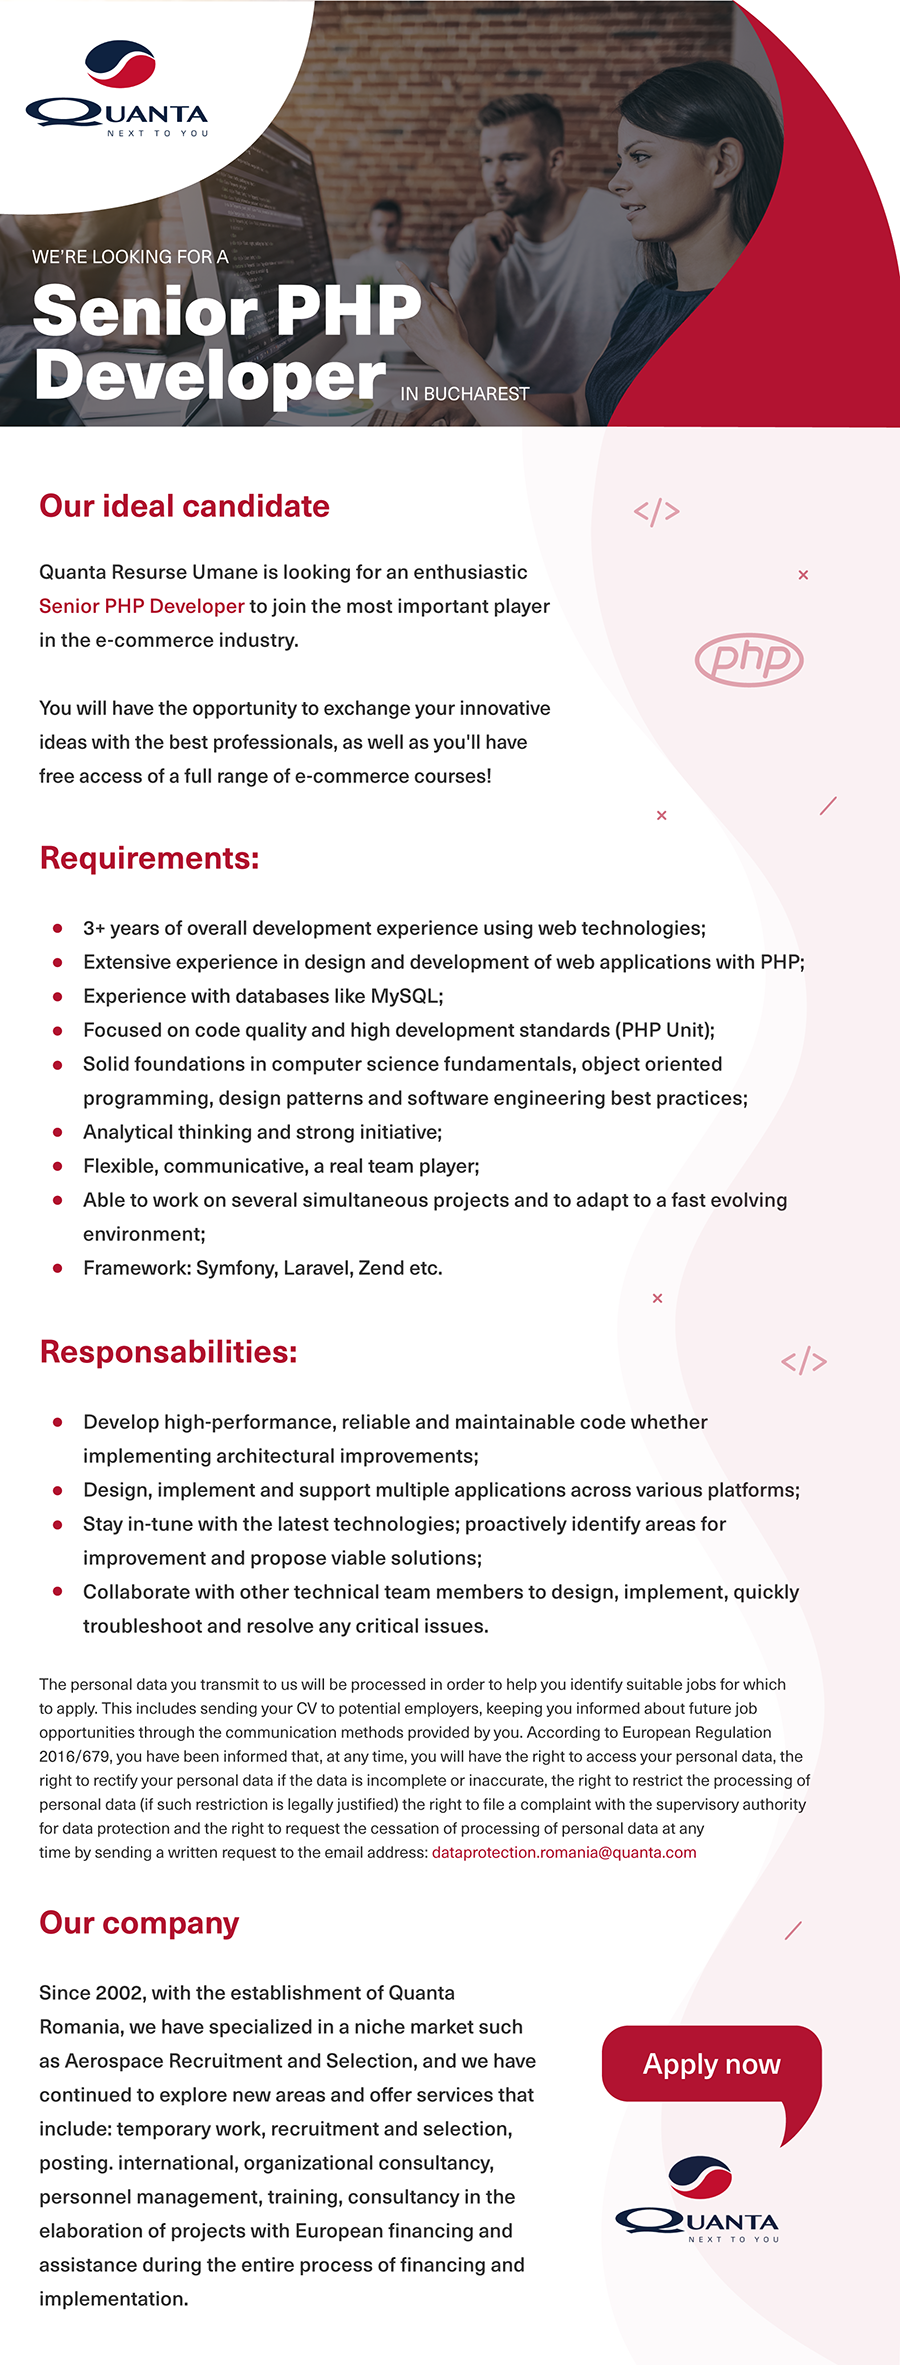 Quanta Resurse Umane is looking for an enthusiastic Senior PHP Developer to join the most important player in the e-commerce industry.  You will have the opportunity to exchange your innovative ideas with the best professionals, as well as you'll have free access of a full range of e-commerce courses!  Requirements: 3+ years of overall development experience using web technologies; Extensive experience in design and development of web applications with PHP; Experience with databases like MySQL; Focused on code quality and high development standards (PHP Unit); Solid foundations in computer science fundamentals, object oriented programming, design patterns and software engineering best practices; Analytical thinking and strong initiative; Flexible, communicative, a real team player; Able to work on several simultaneous projects and to adapt to a fast evolving environment; Framework: Symfony, Laravel, Zend etc.Responsibilities: Develop high-performance, reliable and maintainable code whether implementing architectural improvements; Design, implement and support multiple applications across various platforms; Stay in-tune with the latest technologies; proactively identify areas for improvement and propose viable solutions; Collaborate with other technical team members to design, implement, quickly troubleshoot and resolve any critical issues. The personal data you transmit to us will be processed in order to help you identify suitable jobs for which to apply. This includes sending your CV to potential employers, keeping you informed about future job opportunities through the communication methods provided by you. According to European Regulation 2016/679, you have been informed that, at any time, you will have the right to access your personal data, the right to rectify your personal data if the data is incomplete or inaccurate, the right to restrict the processing of personal data (if such restriction is legally justified) the right to file a complaint with the superv